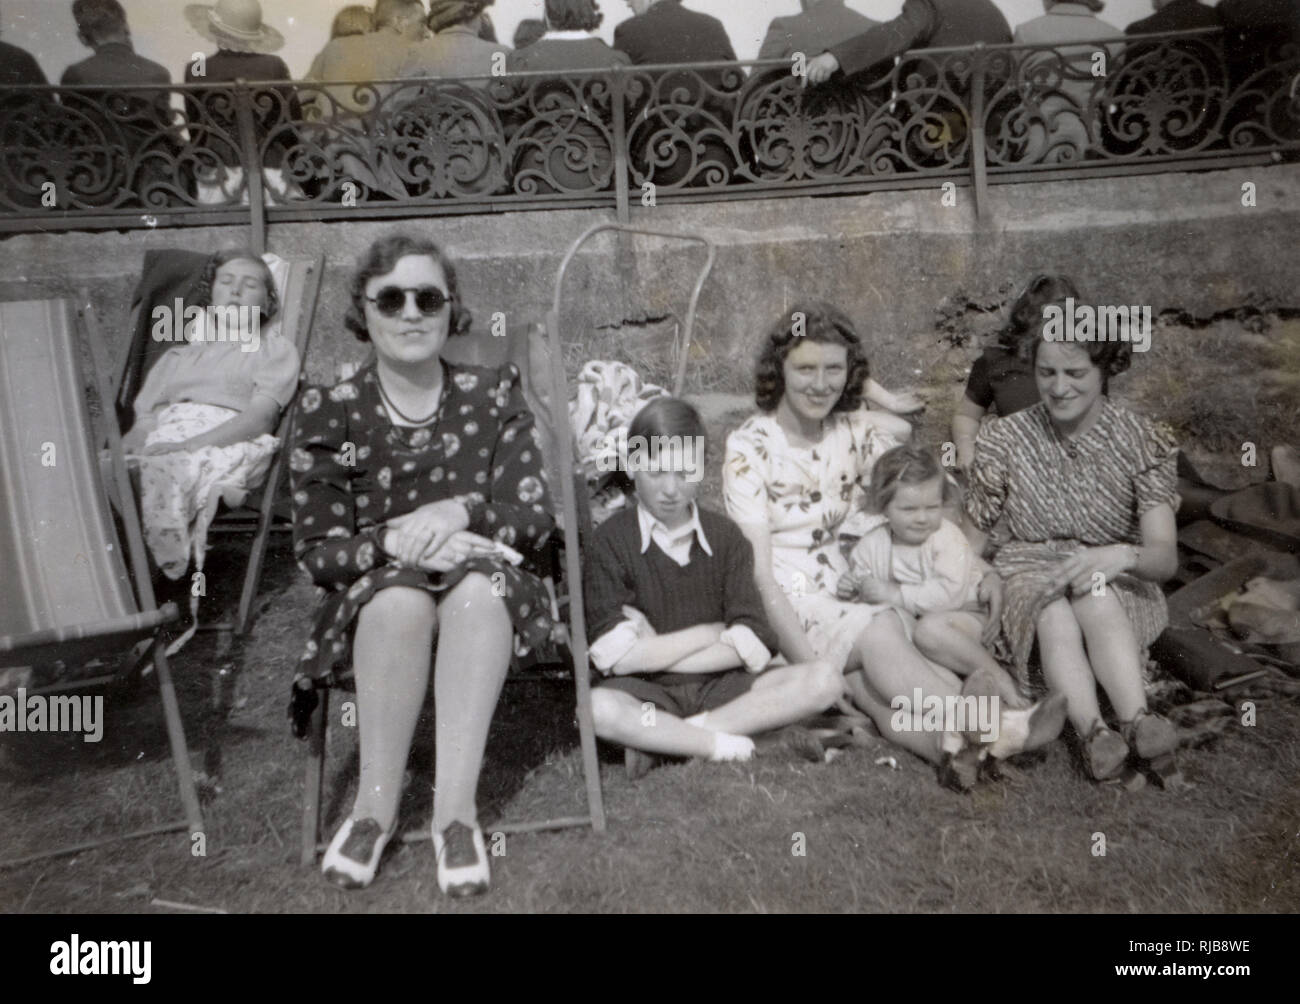 A family relaxing on the beach at an unidentified seaside resort.  Behind them, can be seen the backs of other people lined up on benches along a promenade. - Stock Image